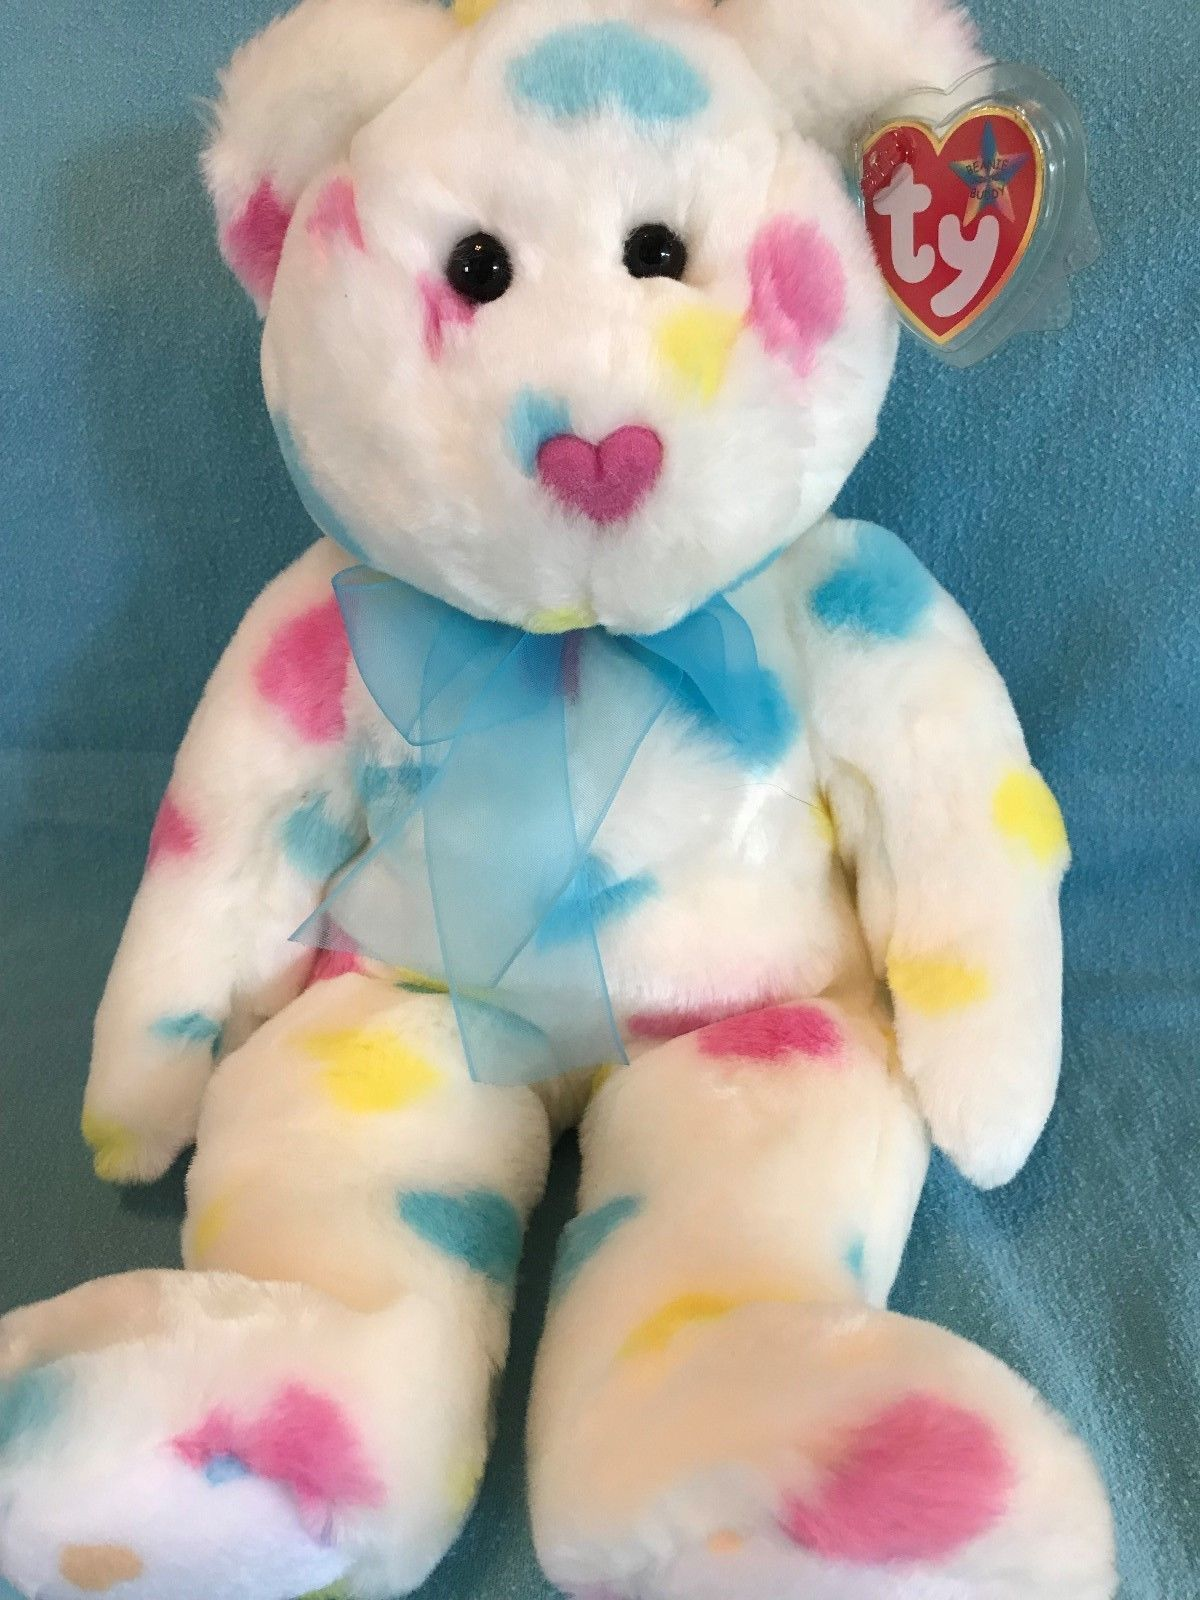 TY Beanie Buddy Kissme the Valentin s Day Bear 14 Stuffed Animal MWMT d756f1180c4b